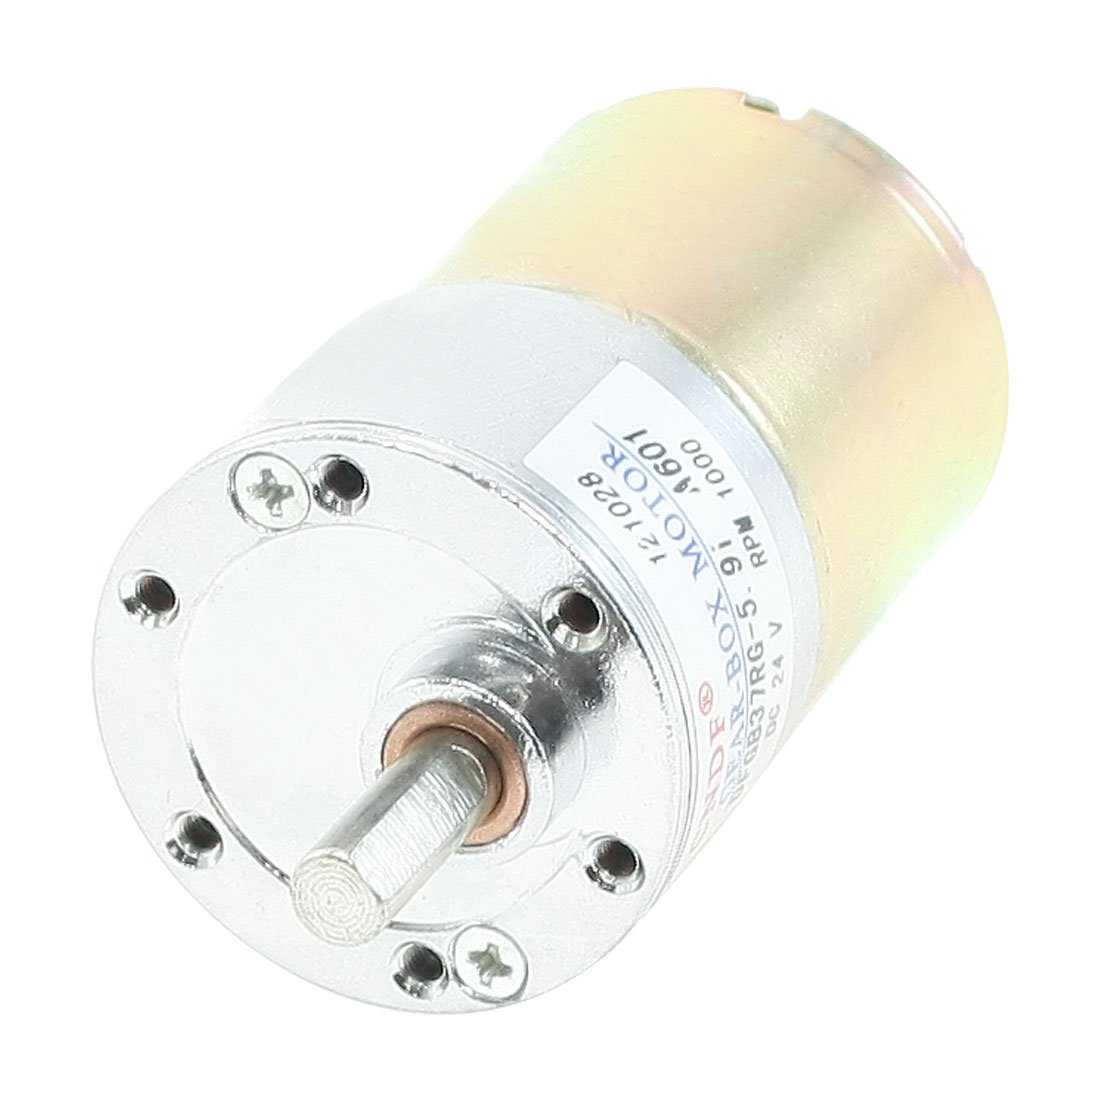 uxcell DC 24V 1000RPM 6mmx15mm Shaft 37mm Body Dia Magnetic Gearbox Motor